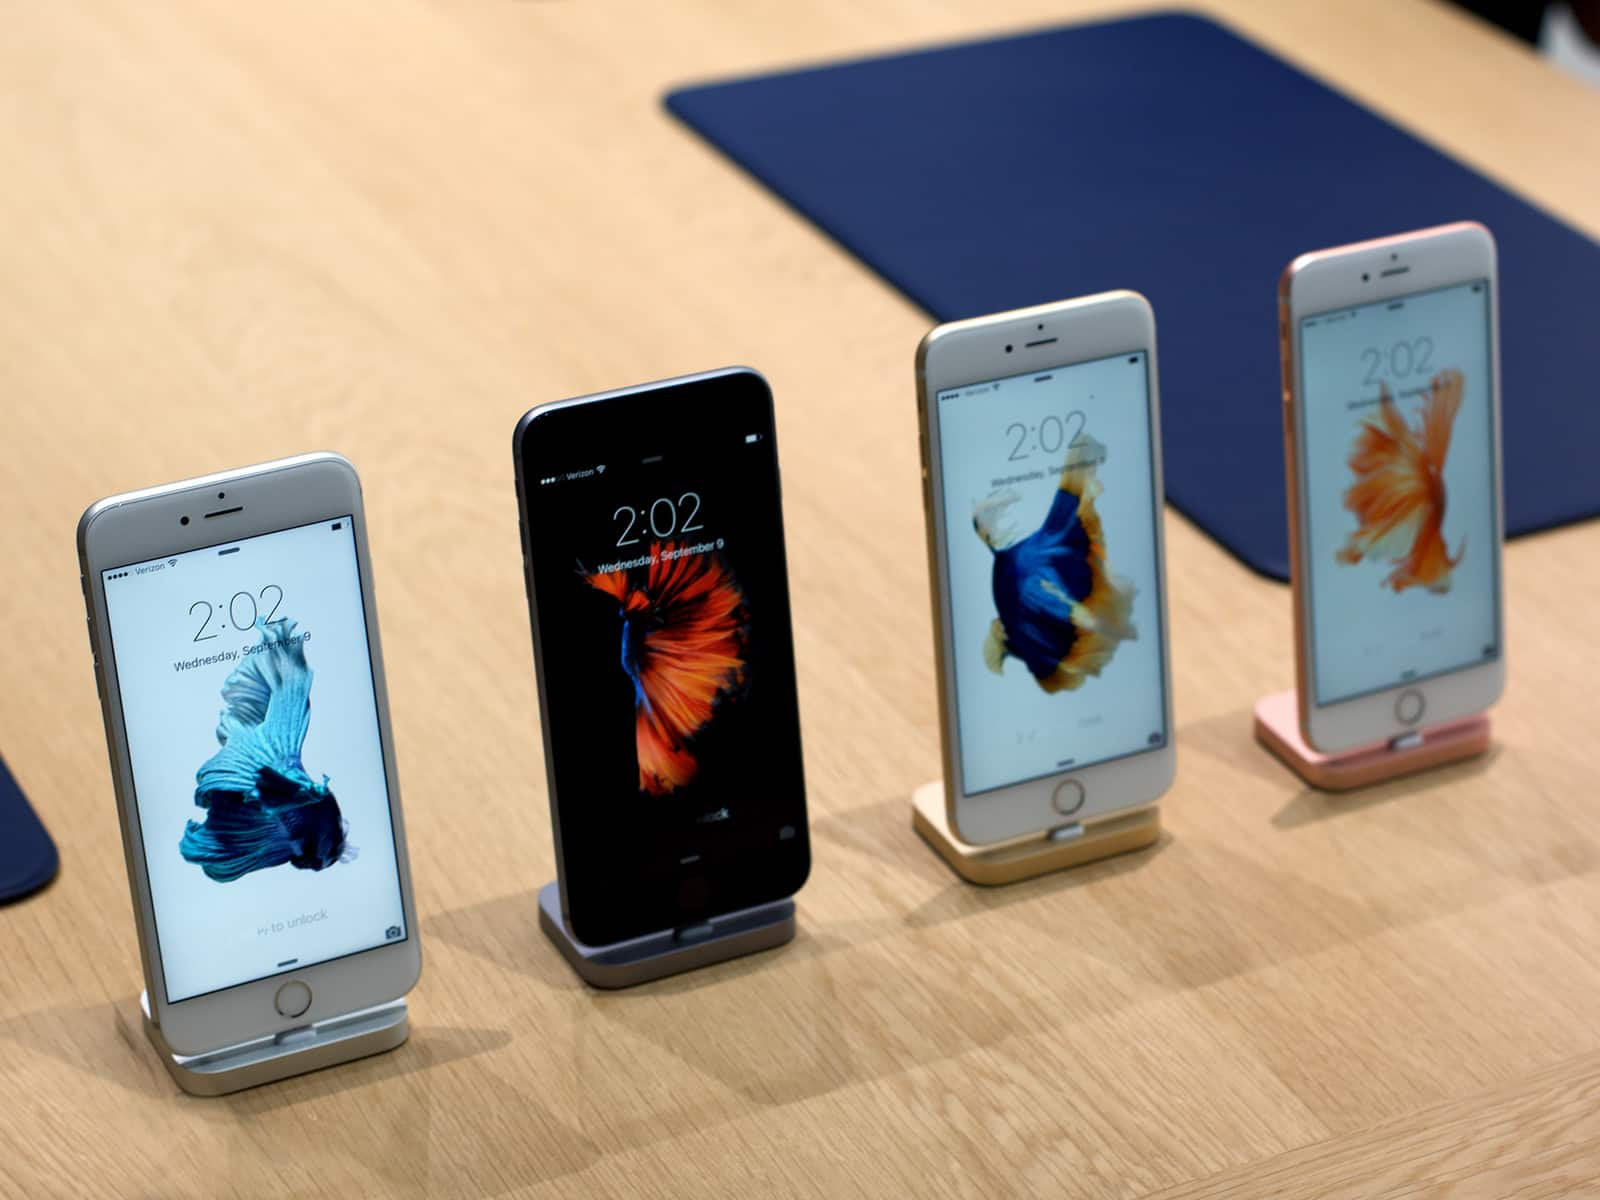 iPhone 6S Tips on improve storage space